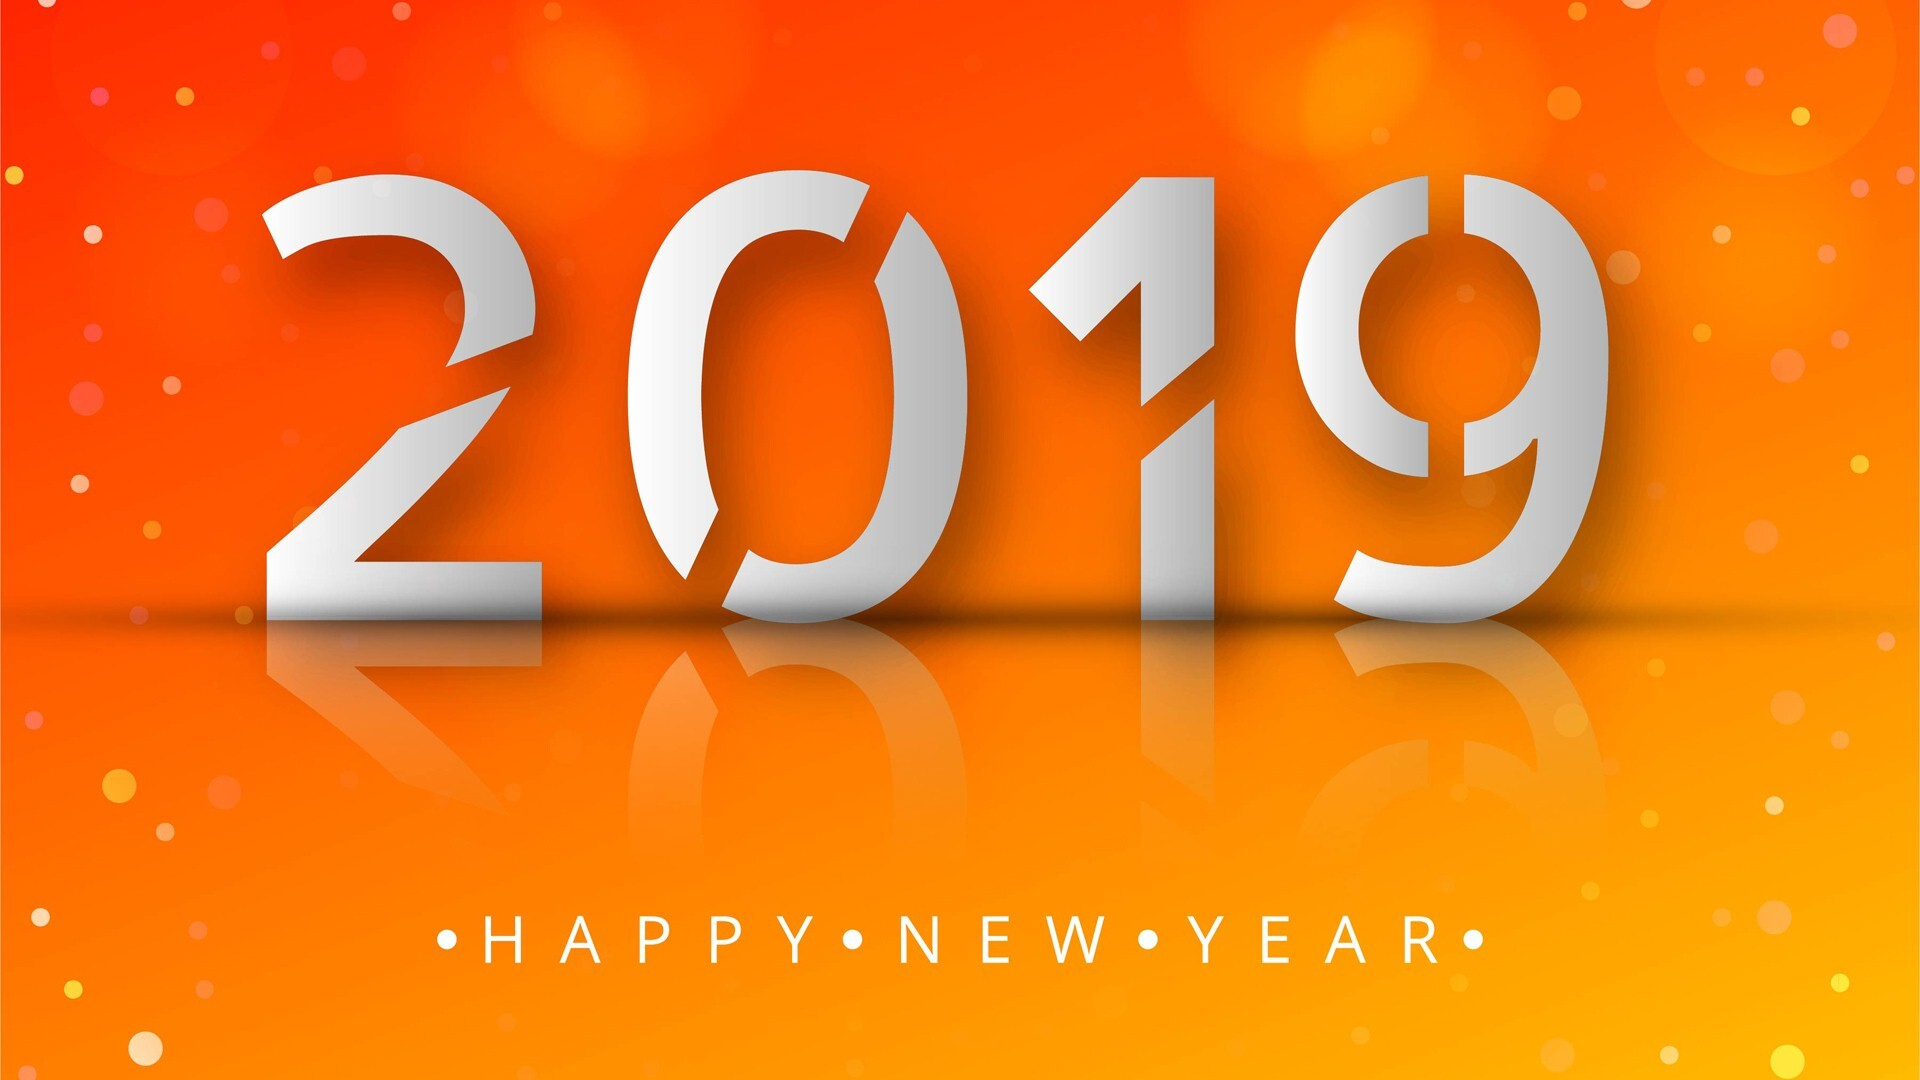 HD Pics of 2019 Happy New Year | HD Wallpapers